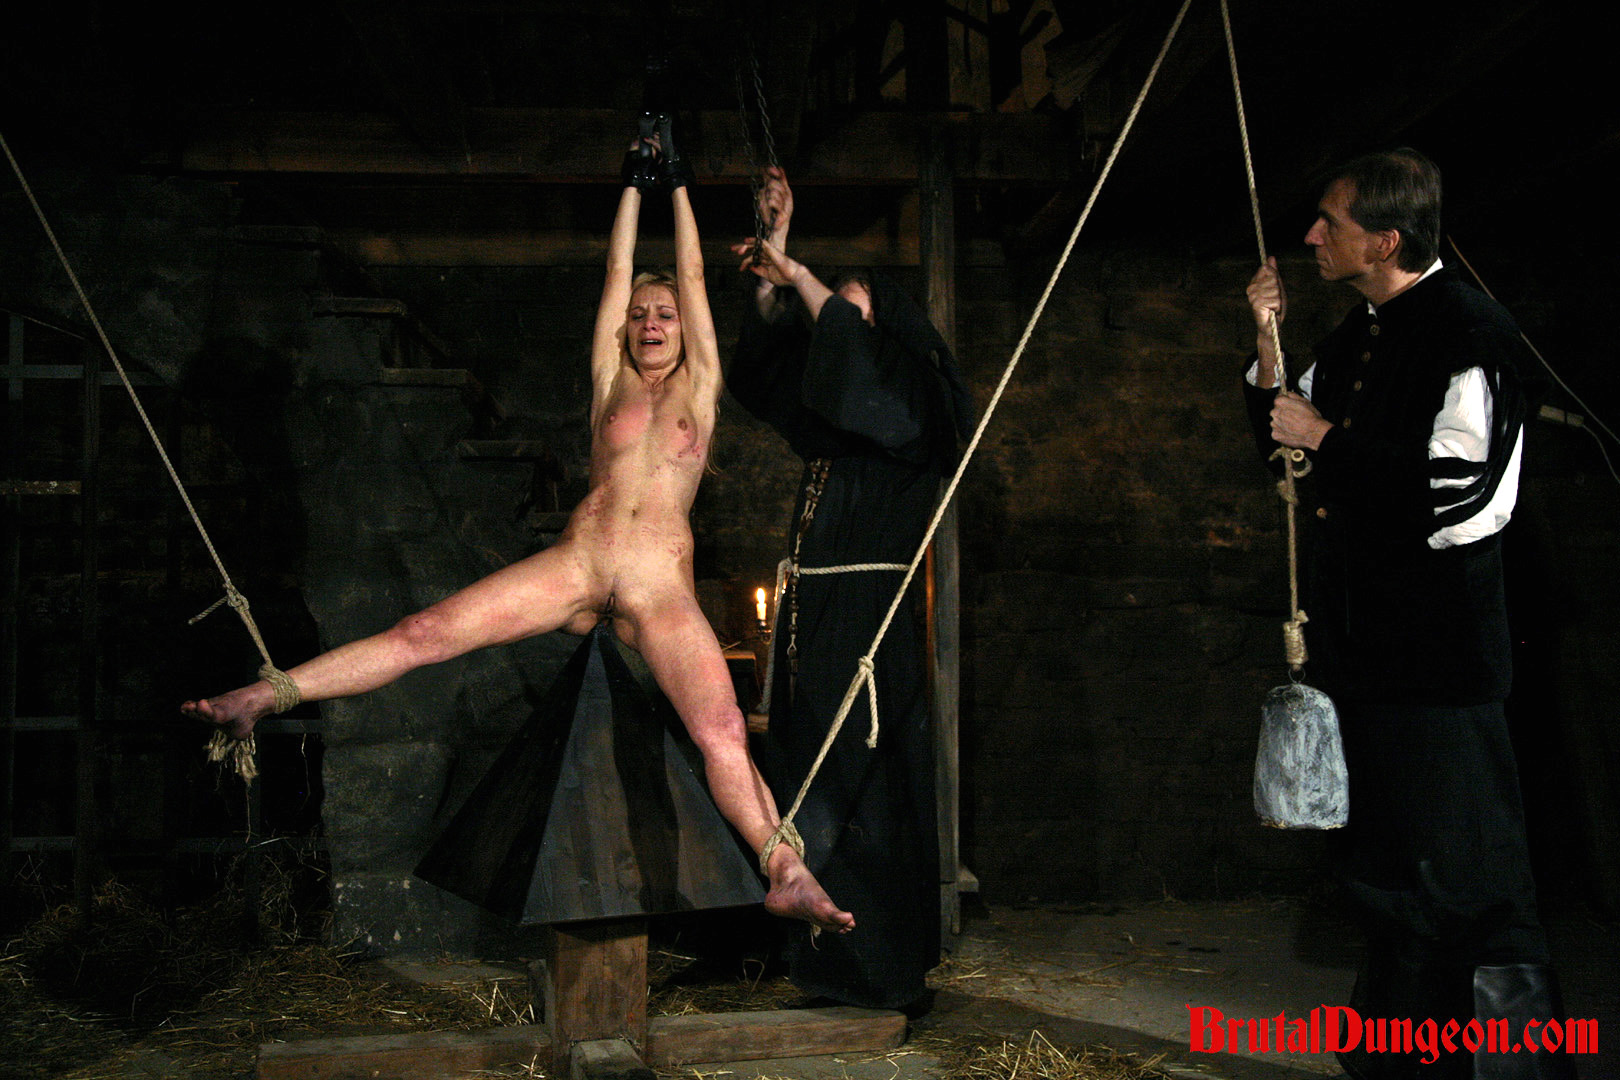 Blonde romina imprisoned bdsm gangbang  blonde serial thief romina picked the wrong home to penetrate and steal from  romina must endure imprisonment bdsm gang bang domination rope bondage and suspension spanking slapping fingering breast nipple and pussy. Blonde serial thief Romina picked the wrong home to break into and steal from. Romina must endure imprisonment, BDSM gang bang, domination, rope bondage and suspension, spanking, slapping, fingering, breast, nipple and cunt anguished with an interesting device and weights.